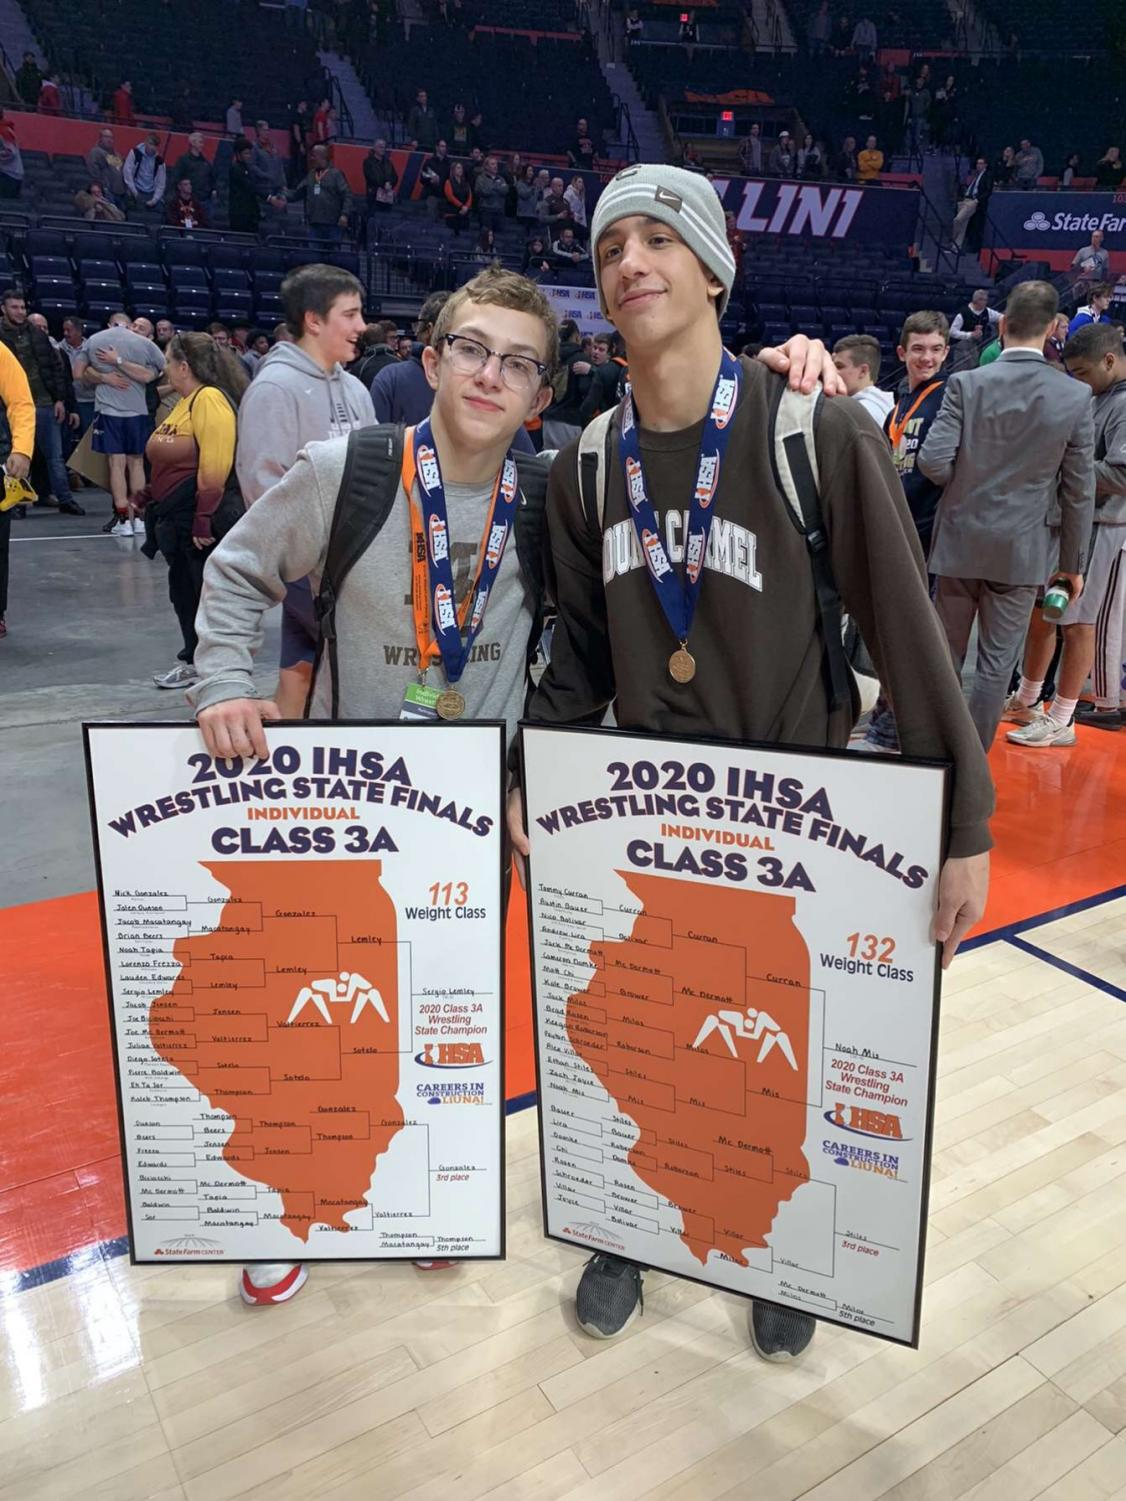 Me winning a state title with my former teammate Sergio Lemley last year, 2020.